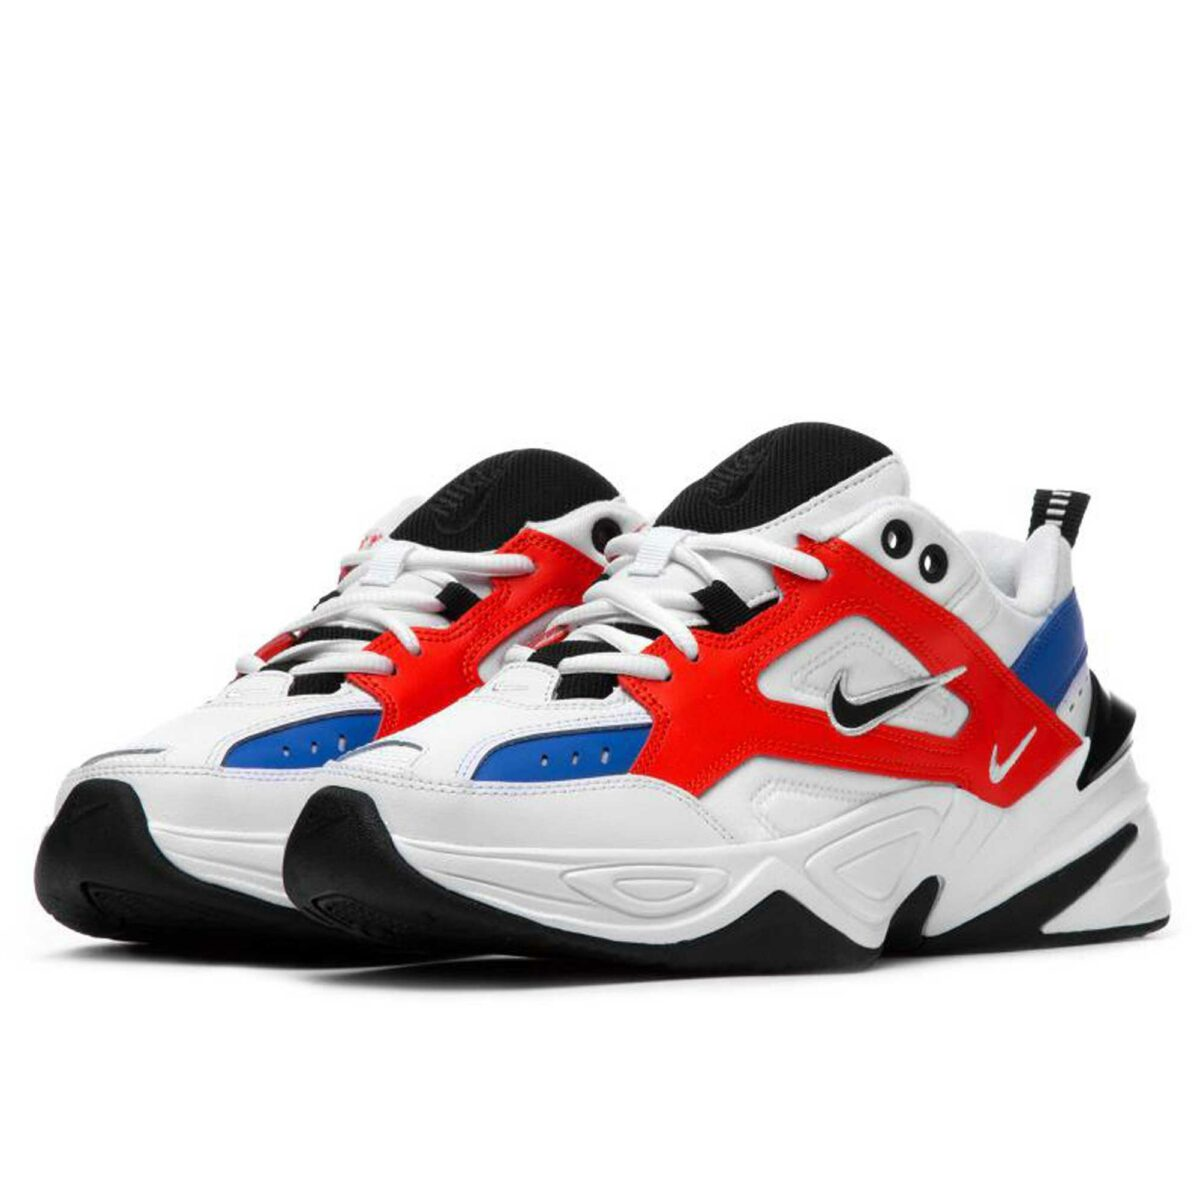 nike m2k tekno white orange ao3108_101 купить